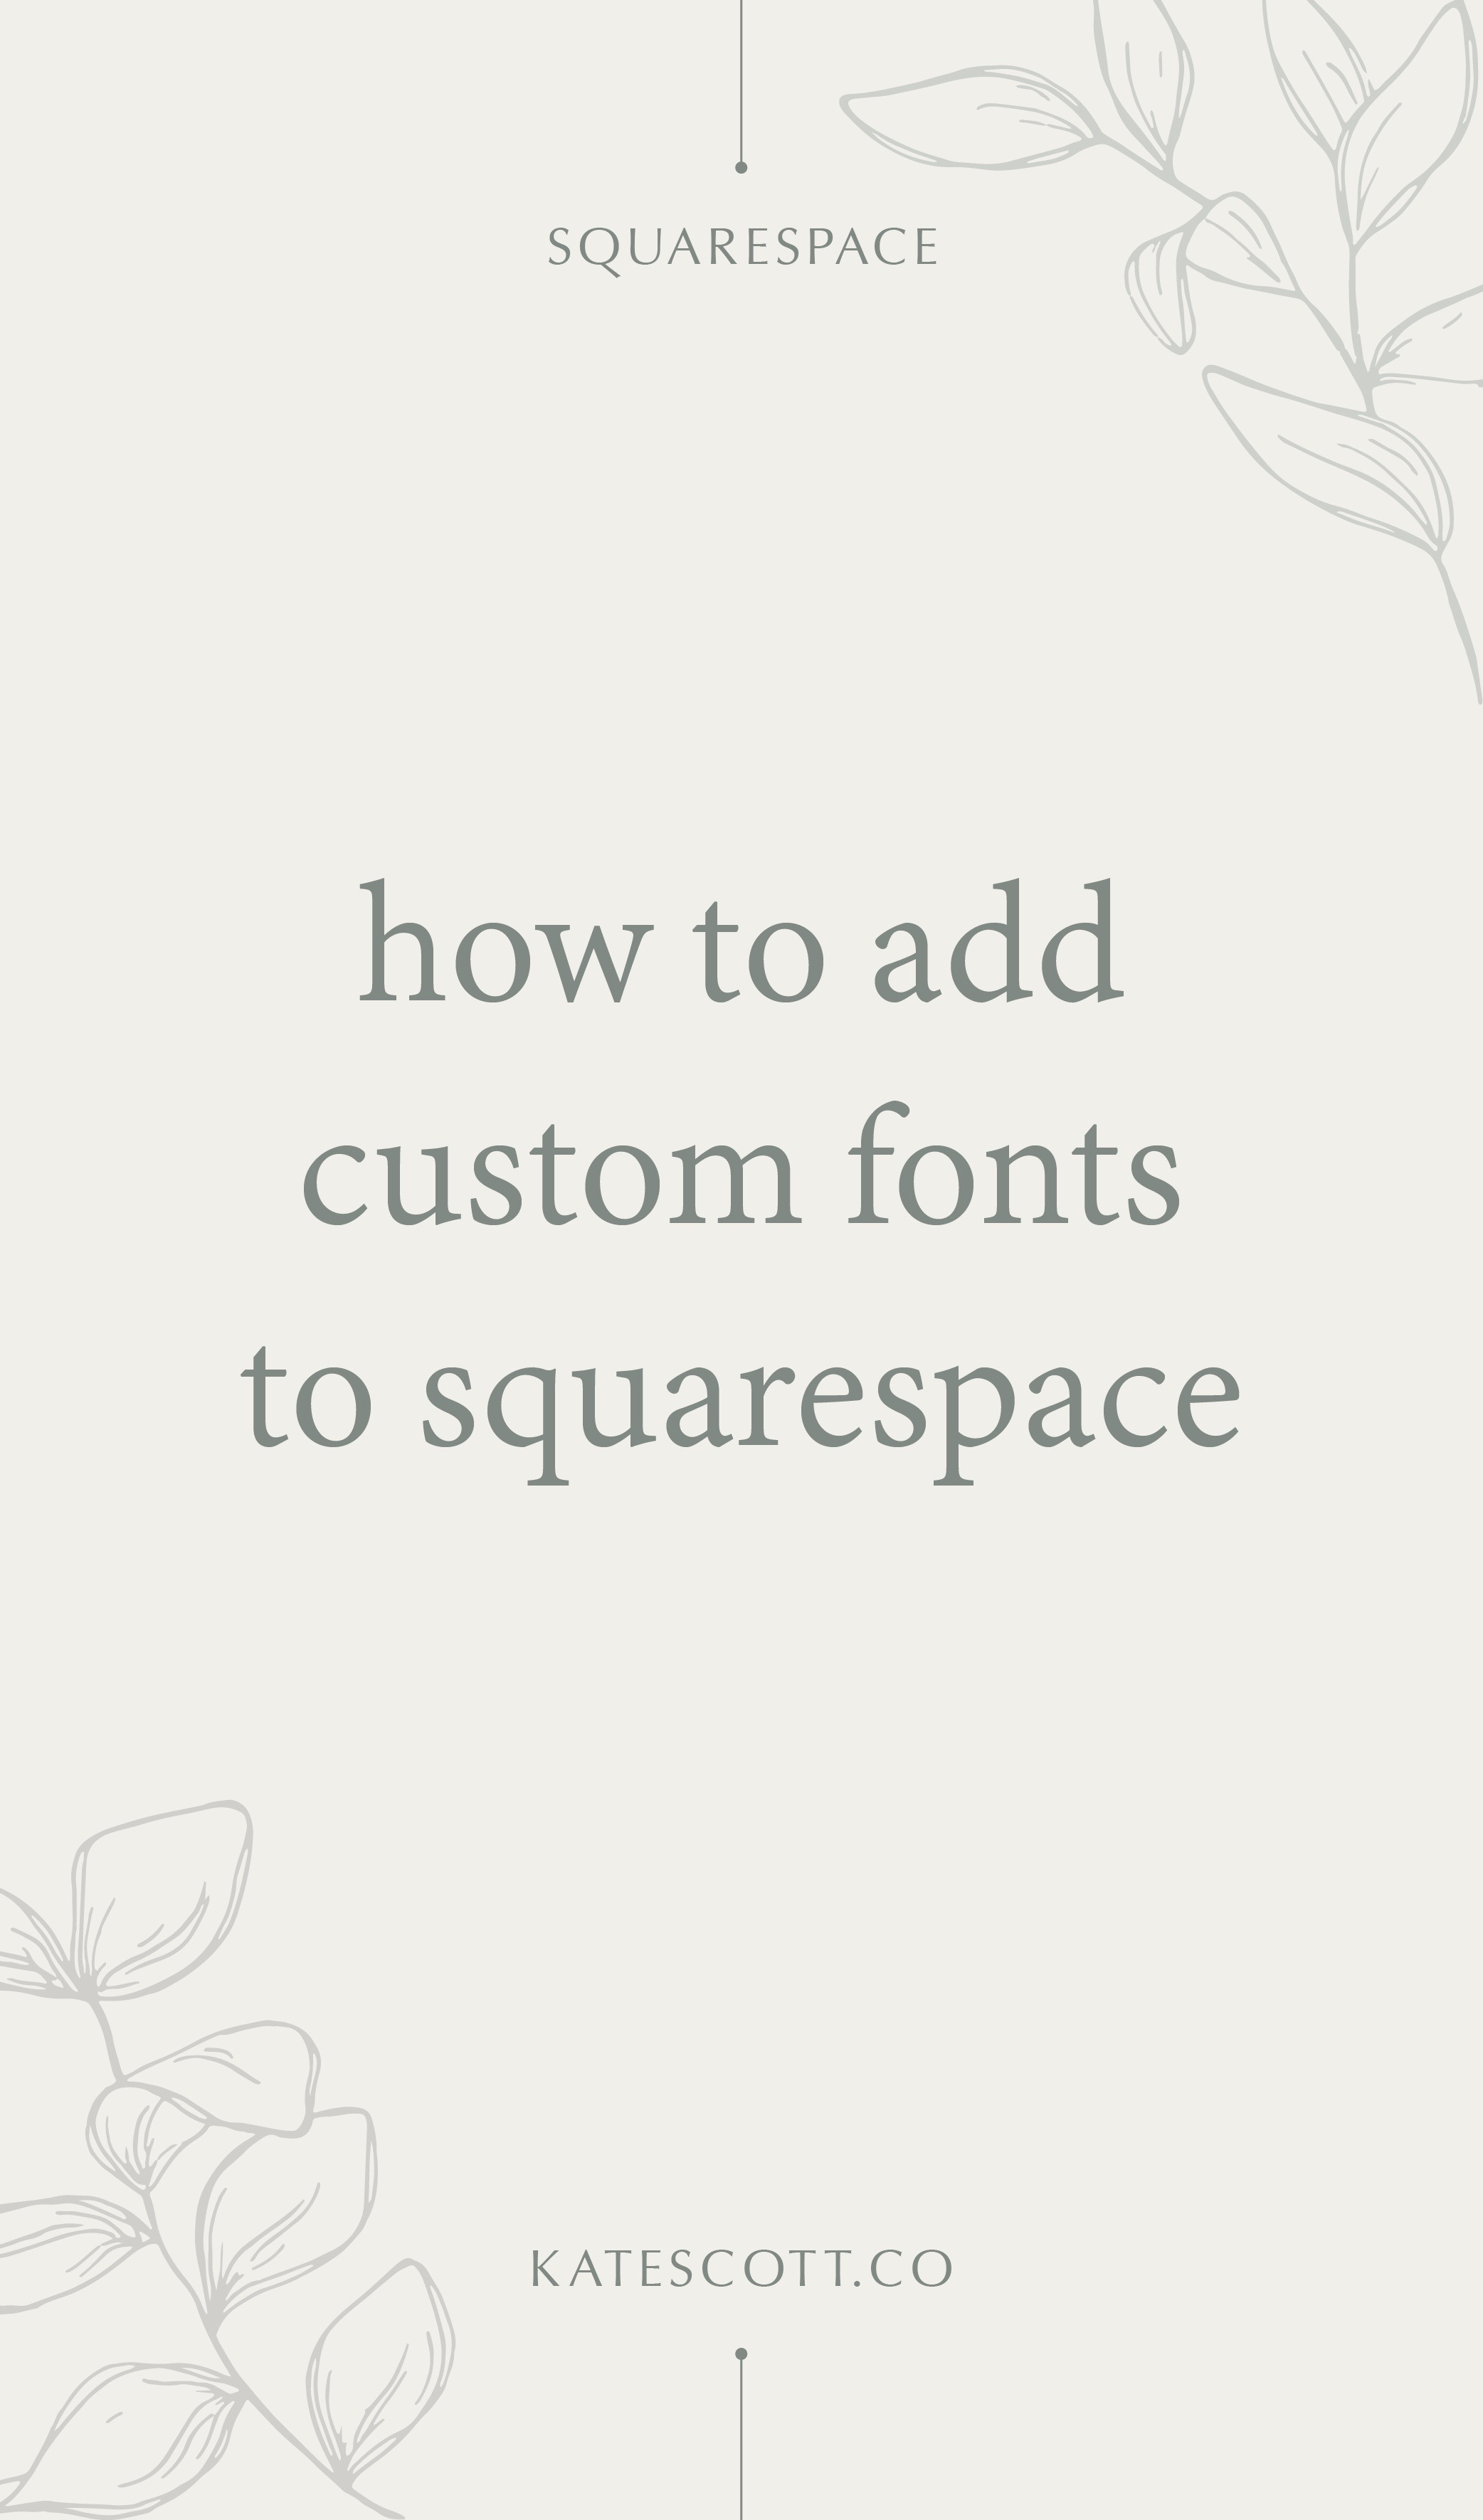 How to Add Custom Fonts to Your Squarespace Website | Squarespace Customizations | Custom Fonts Squarespace | Squarespace Tutorial Videos | #squarespace #squarespacetips #squarespacetutorial #fonts